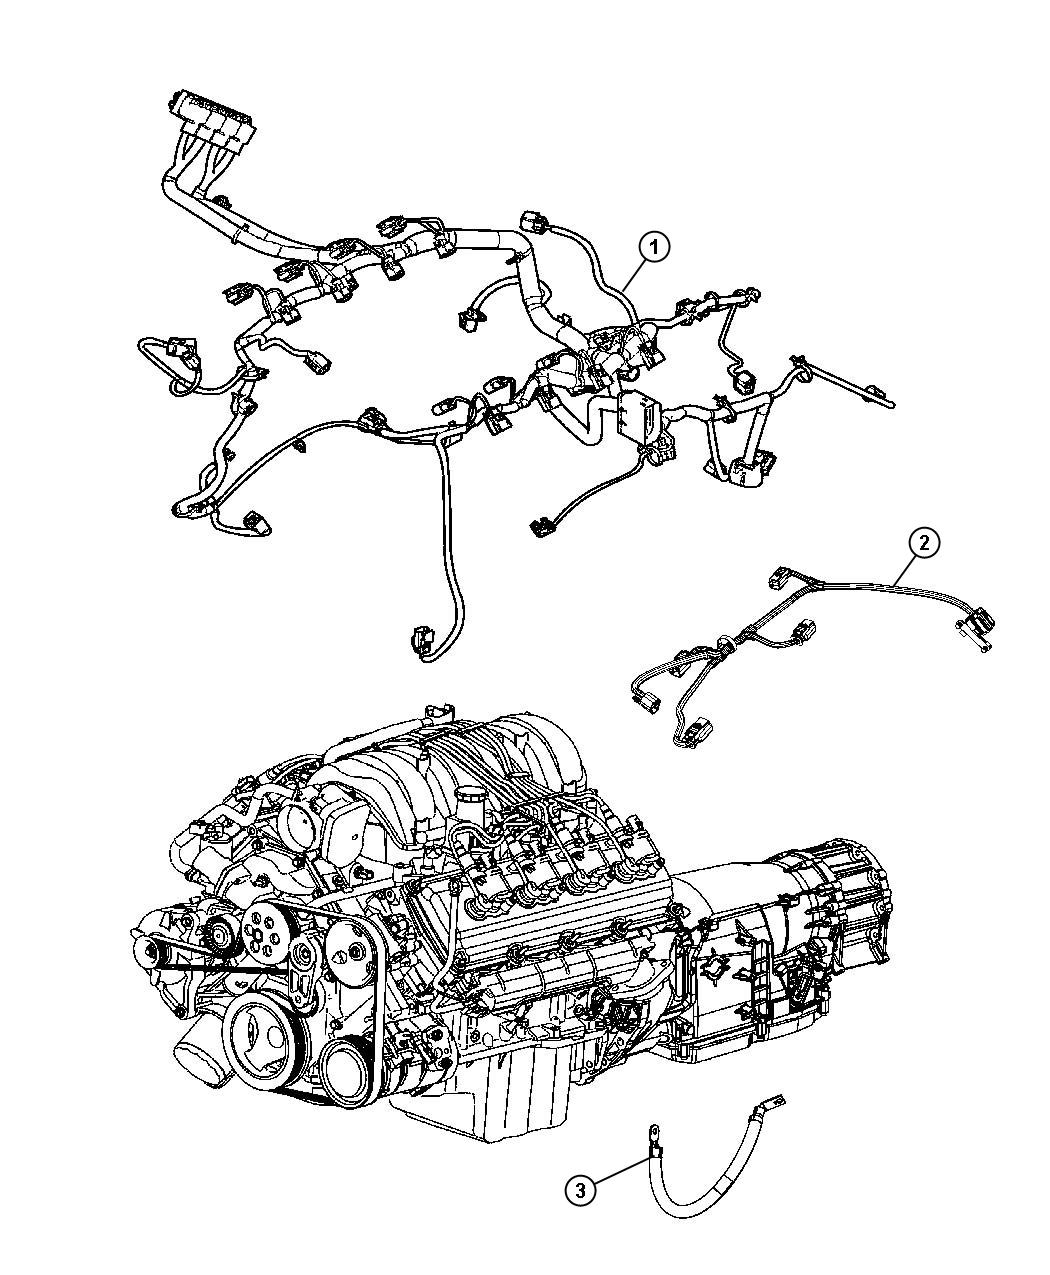 Jeep Grand Cherokee Wiring. Ground jumper. Up to 4/12/10